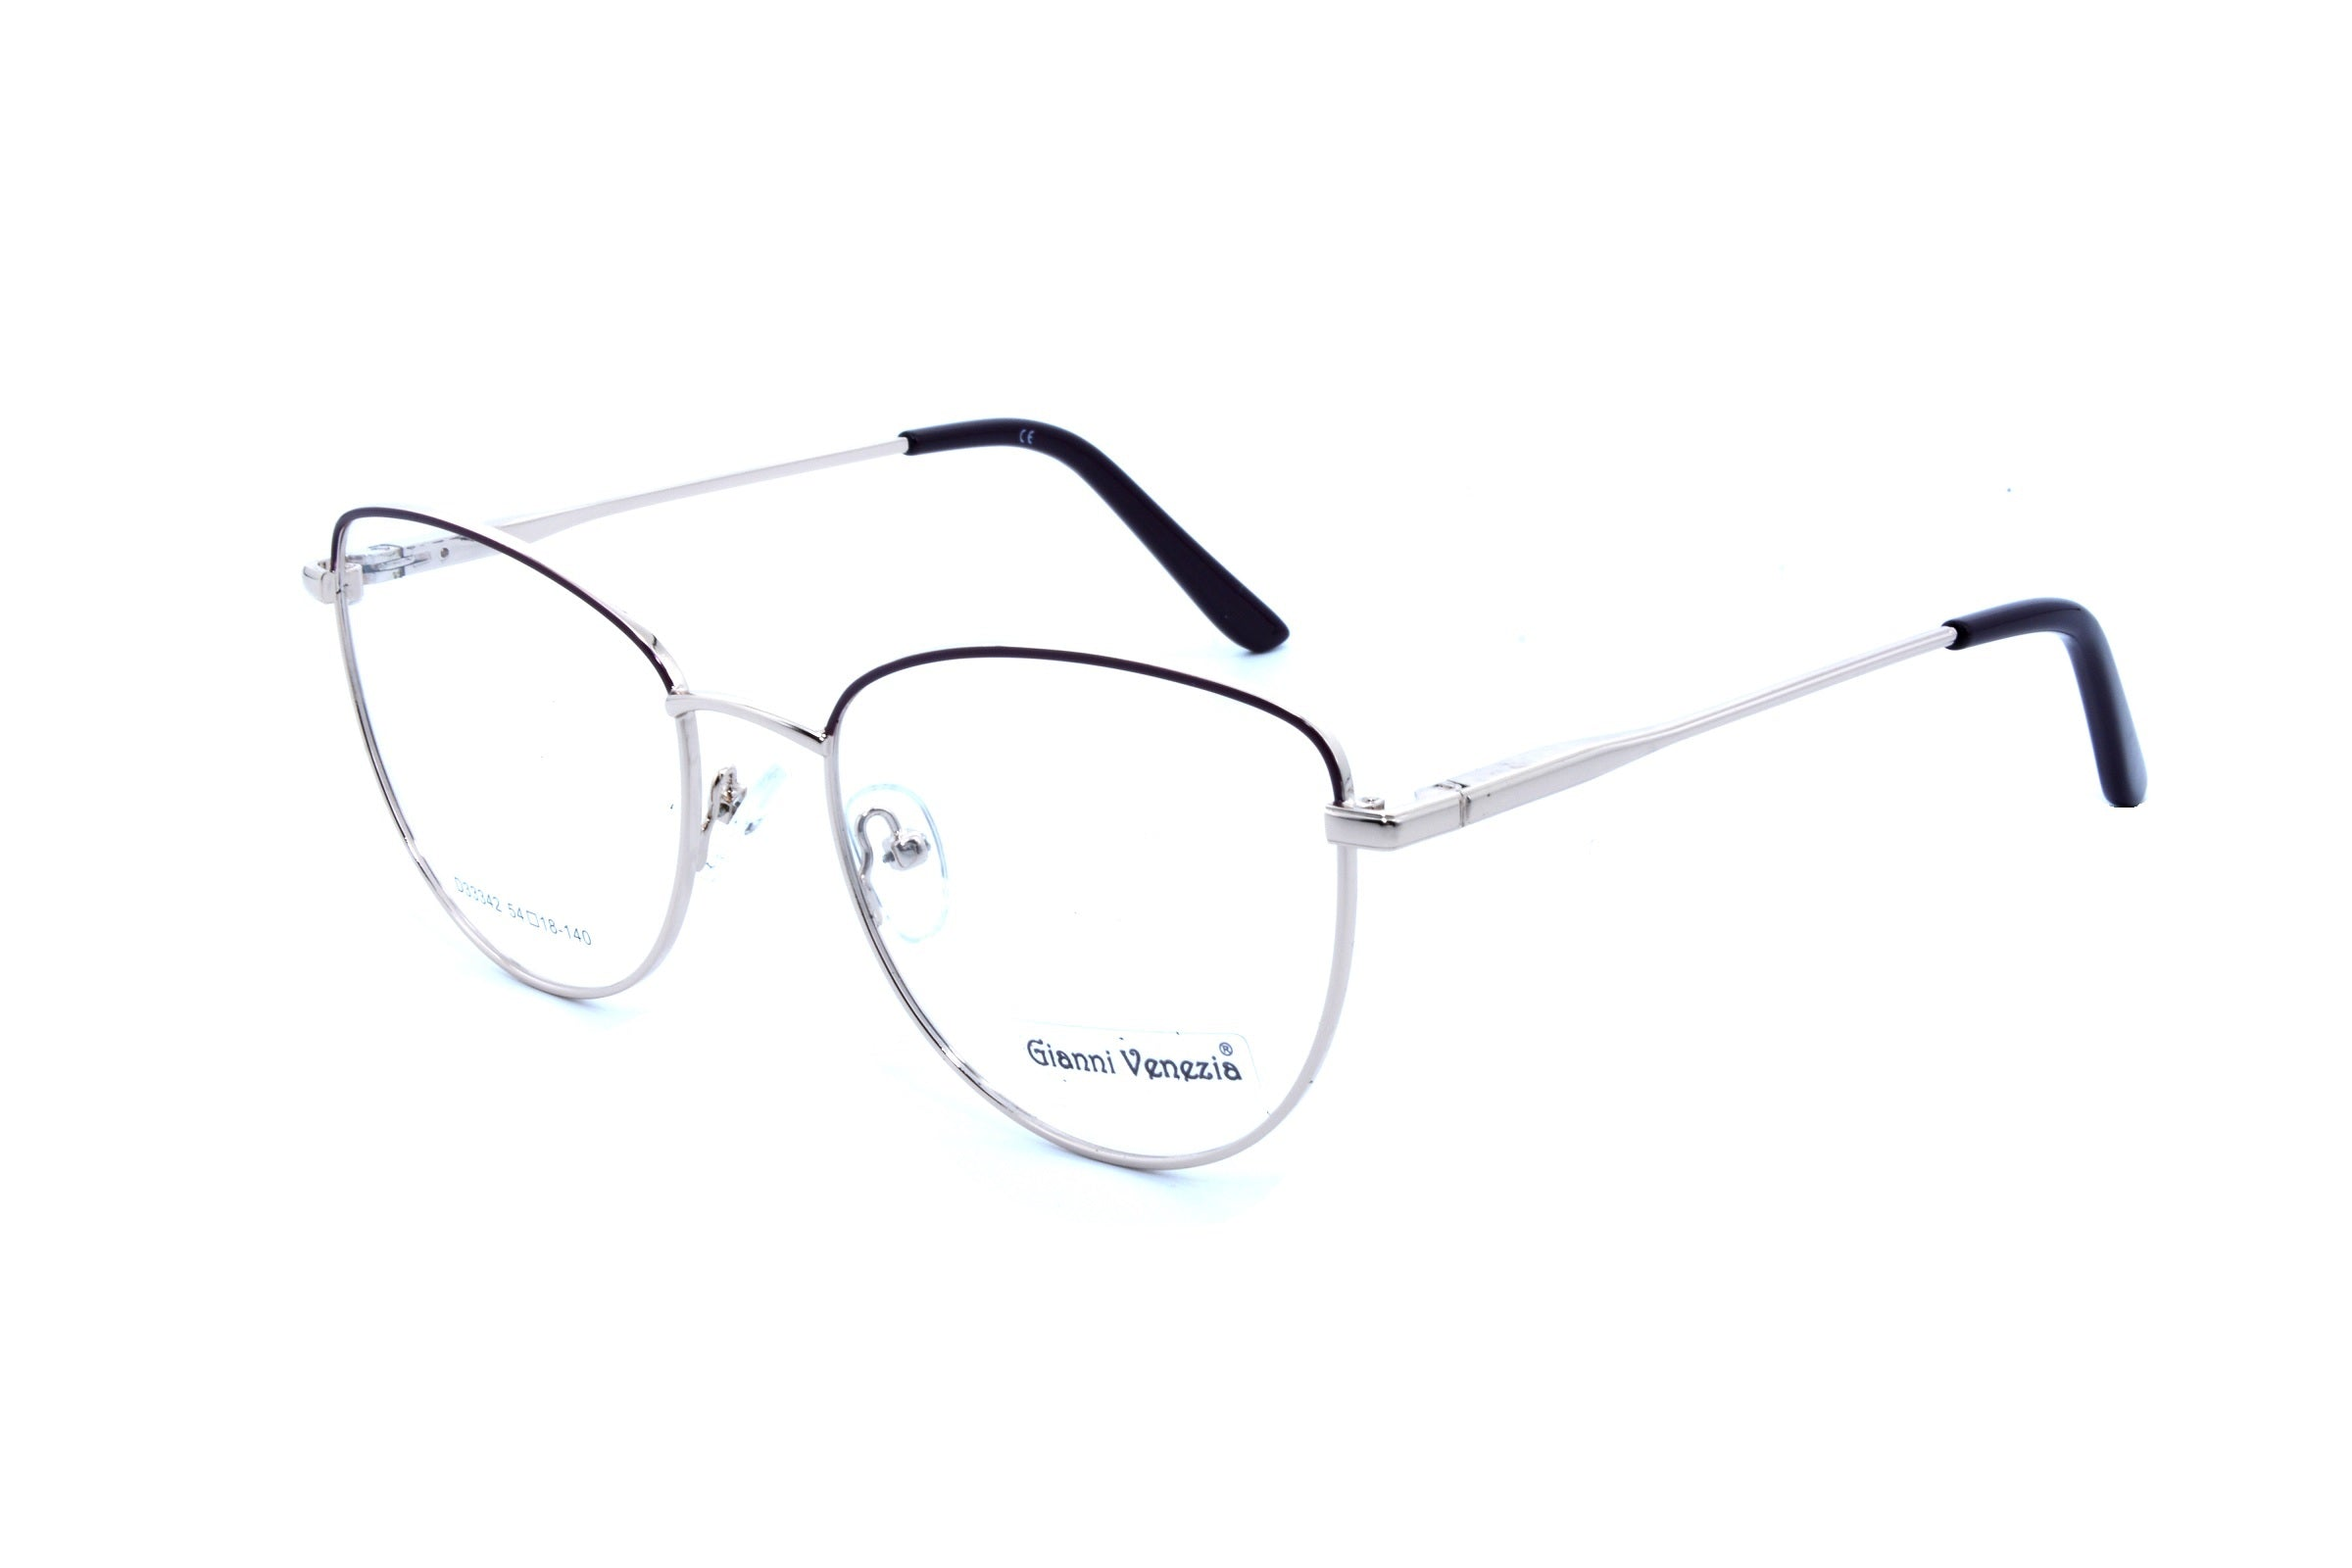 Gianni Venezia eyewear D33342, C7 - Optics Trading